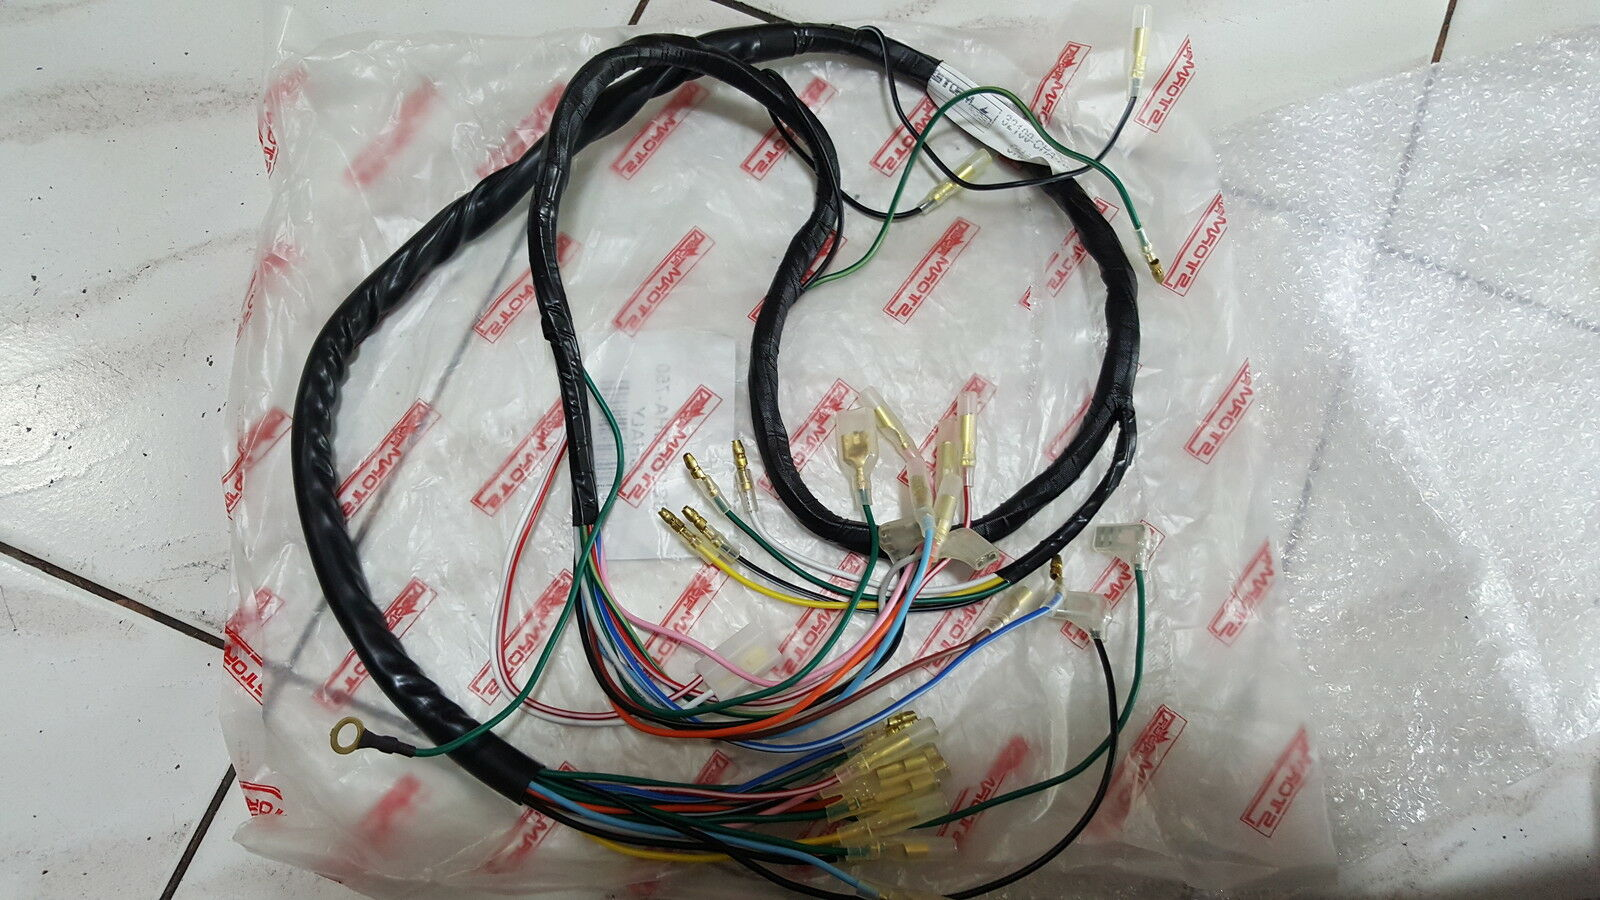 Honda Chaly 50 70 CF50 CF70 Wire wiring harness 1 of 3 ...